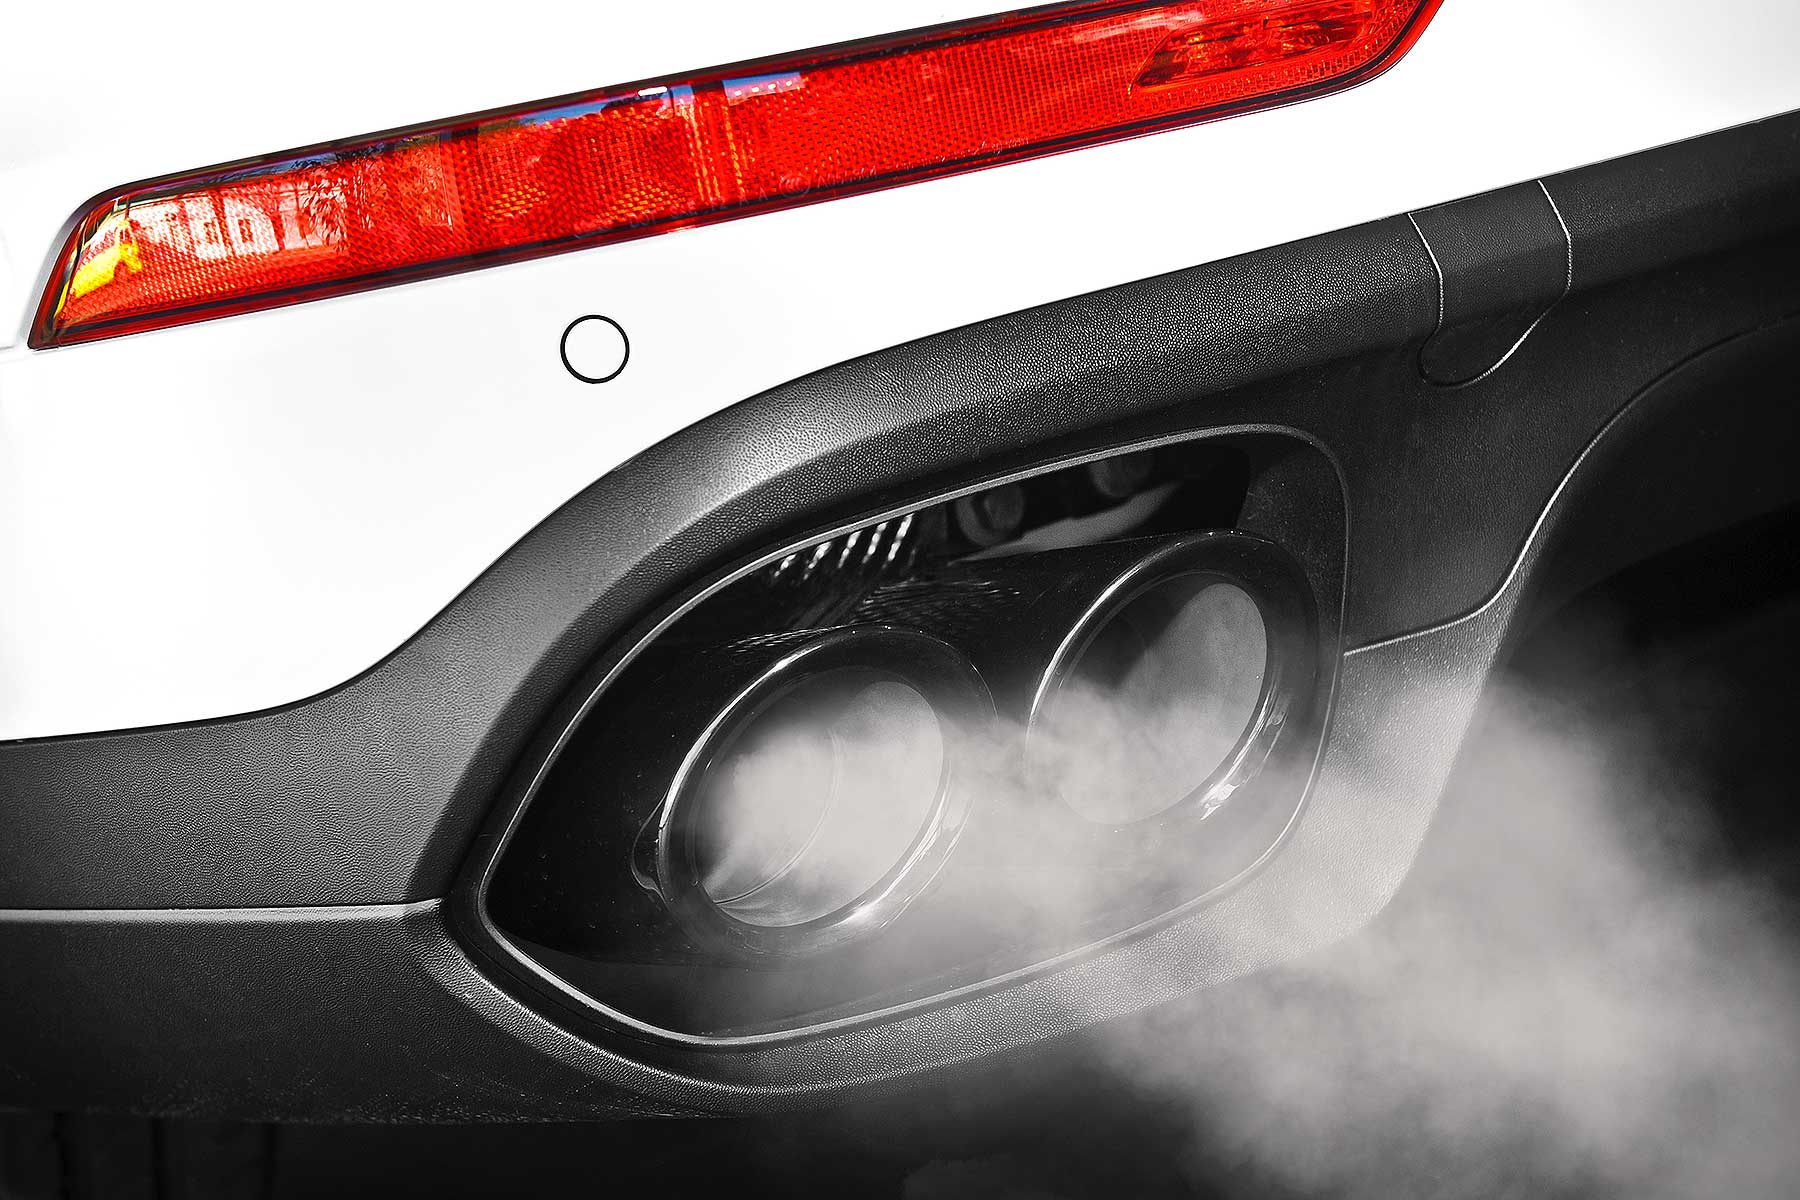 Car exhaust emissions